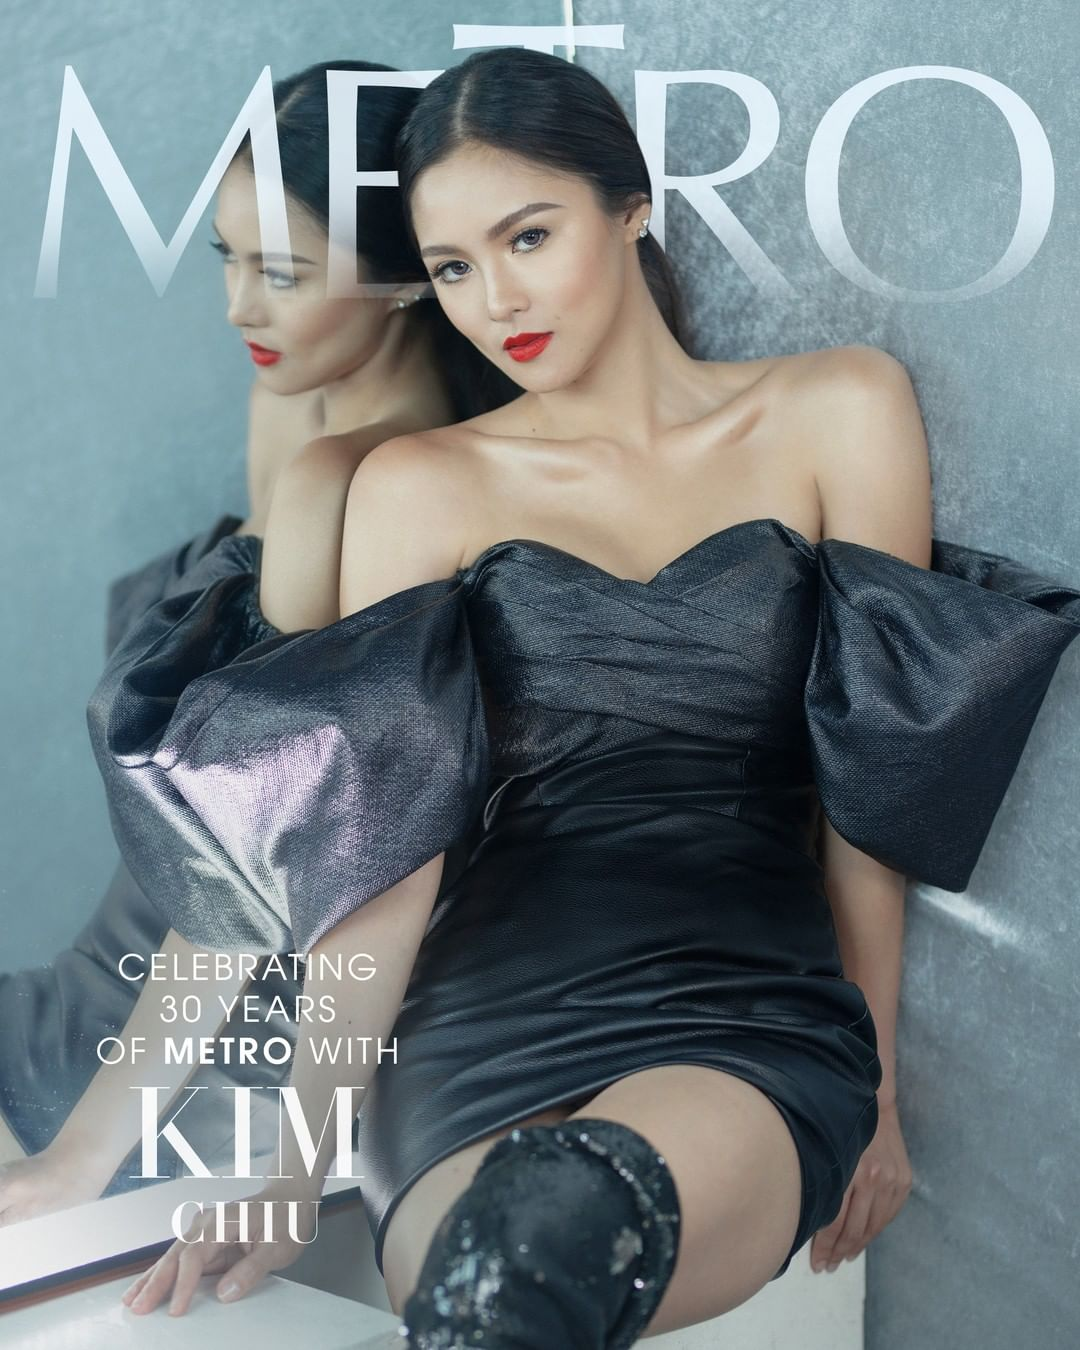 Kim Chiu for #Metro30's anniversary issue